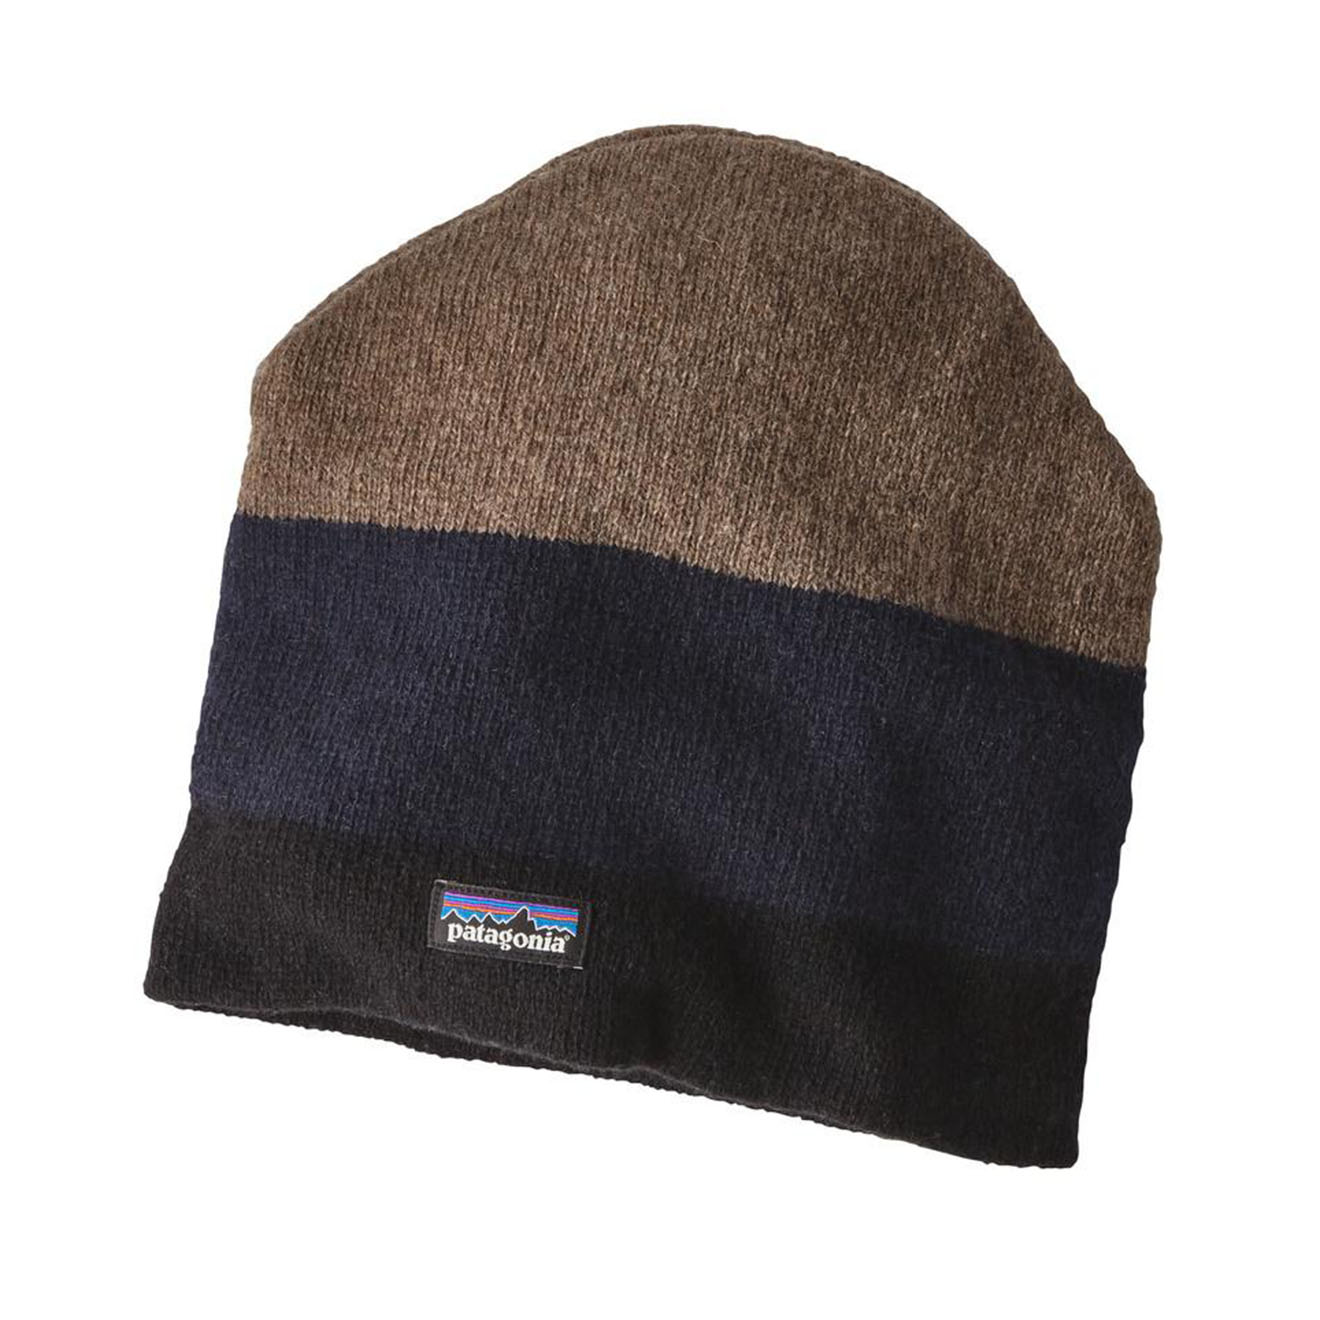 Patagonia Backslide Beanie Hat Black Sediment Stripe - The Sporting Lodge a98760e2bac